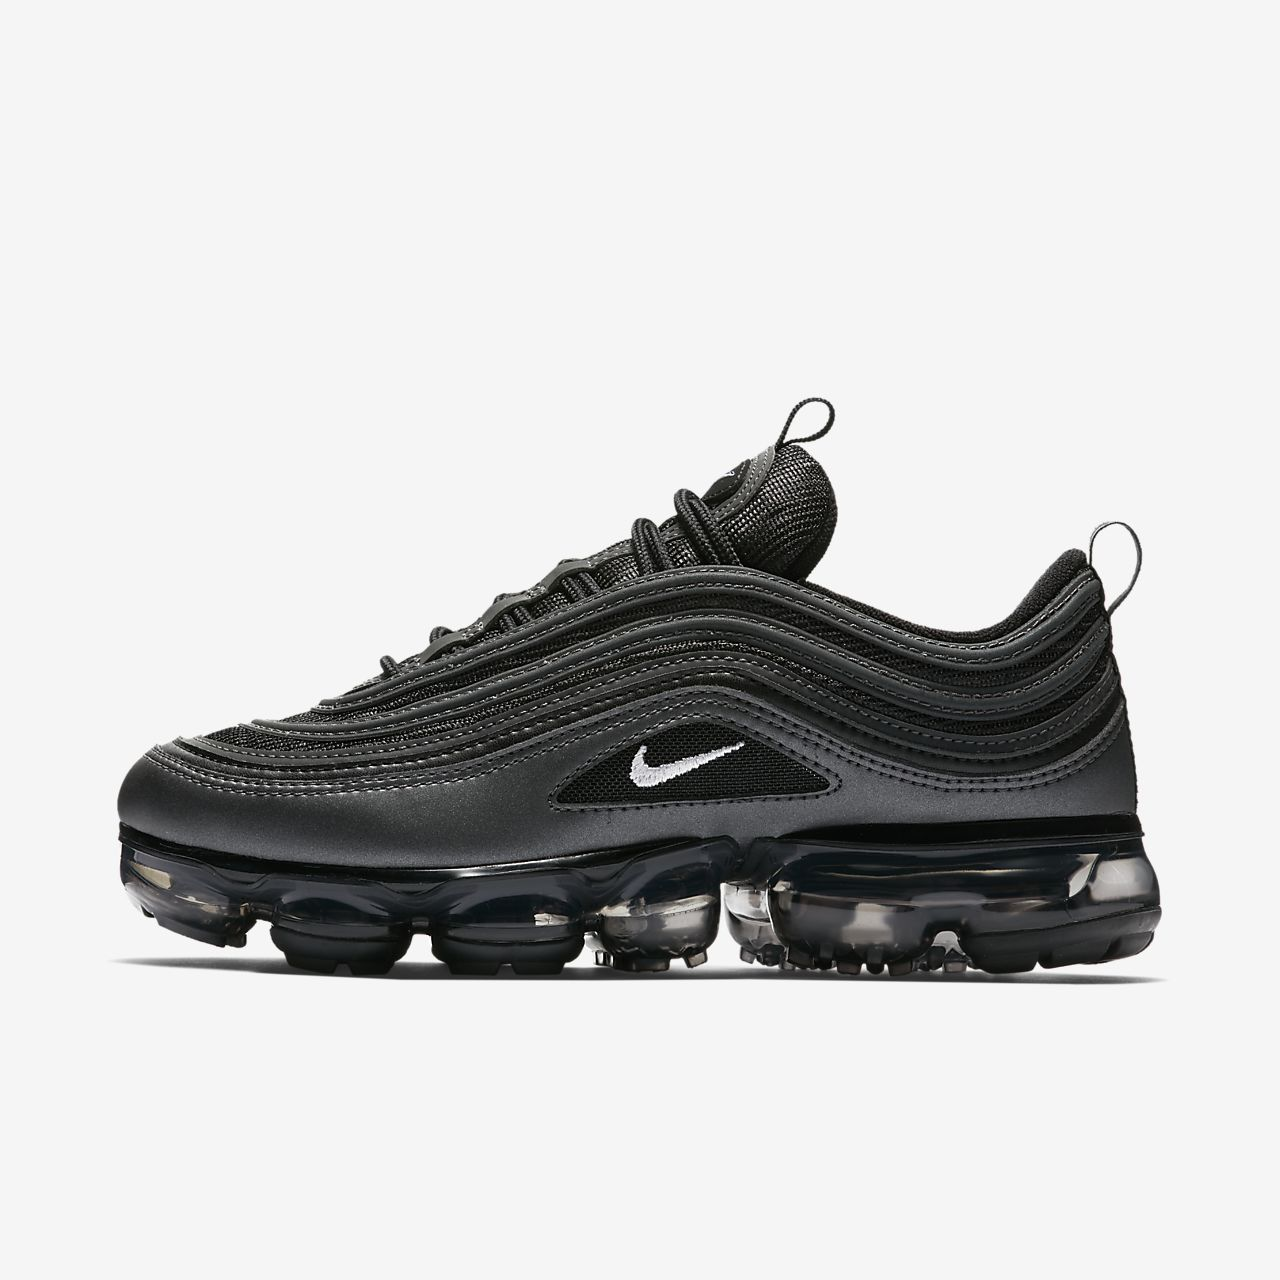 low priced cab59 7261b Nike Air VaporMax 97 Women's Shoe